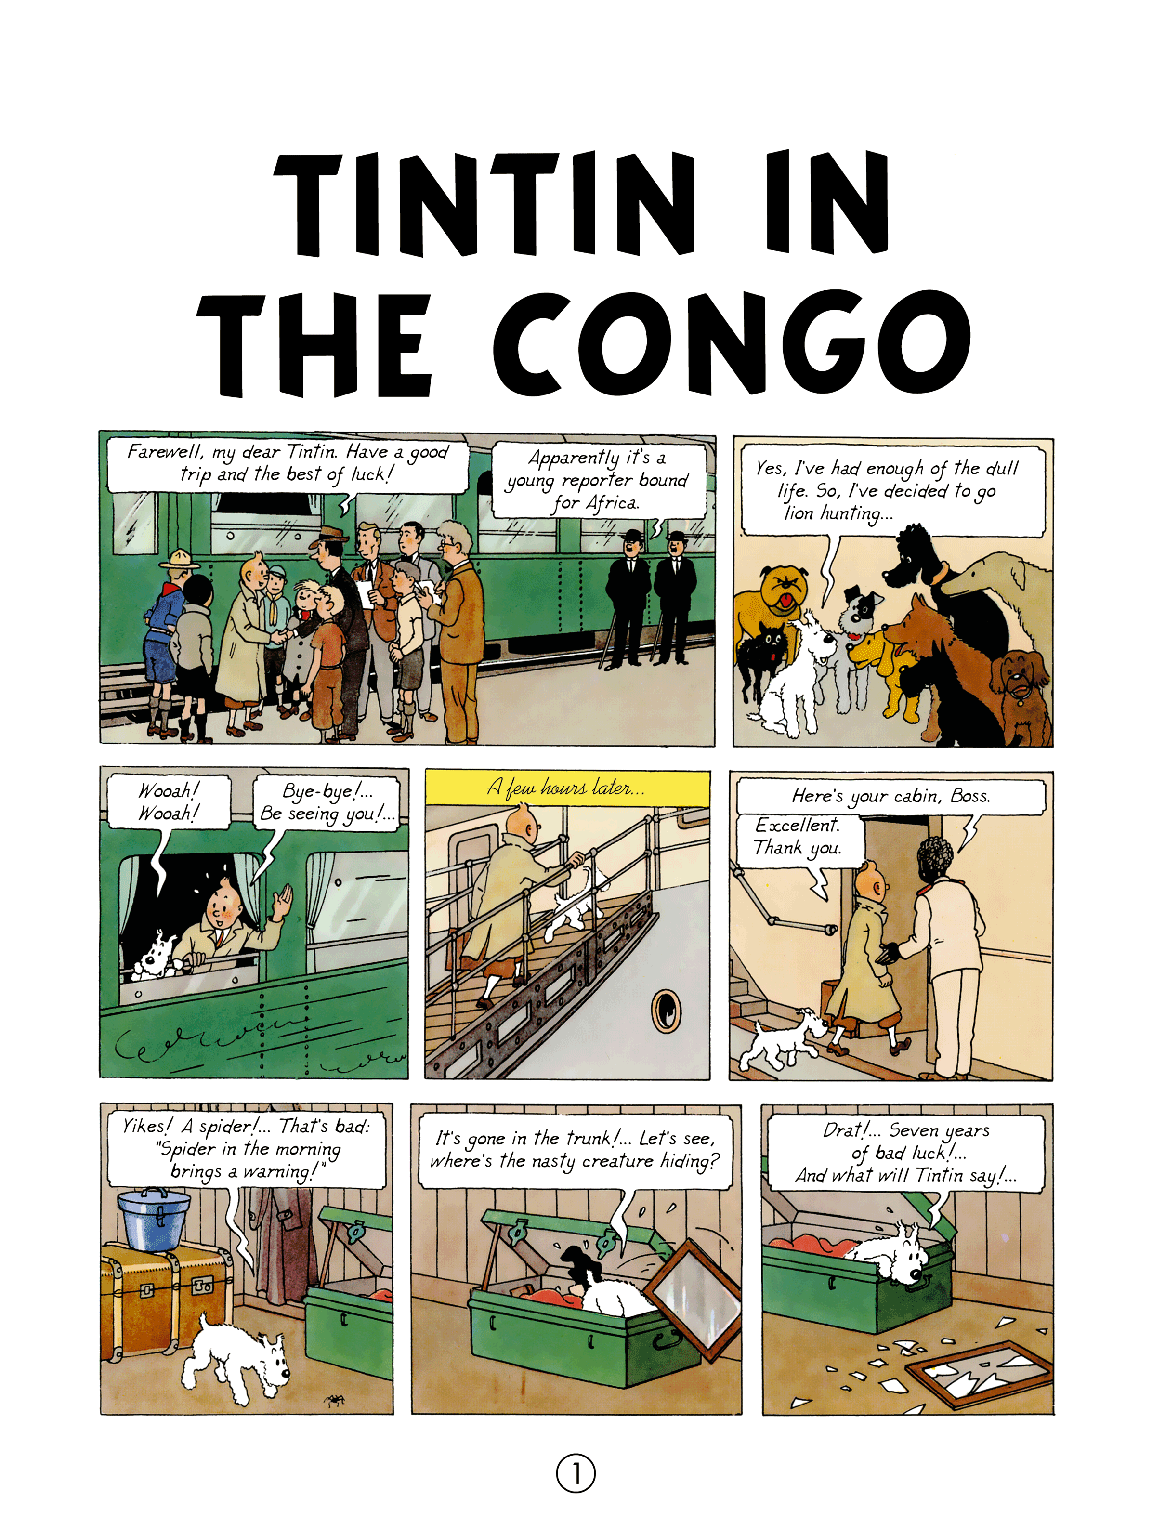 Tintin in the Congo - Page 1